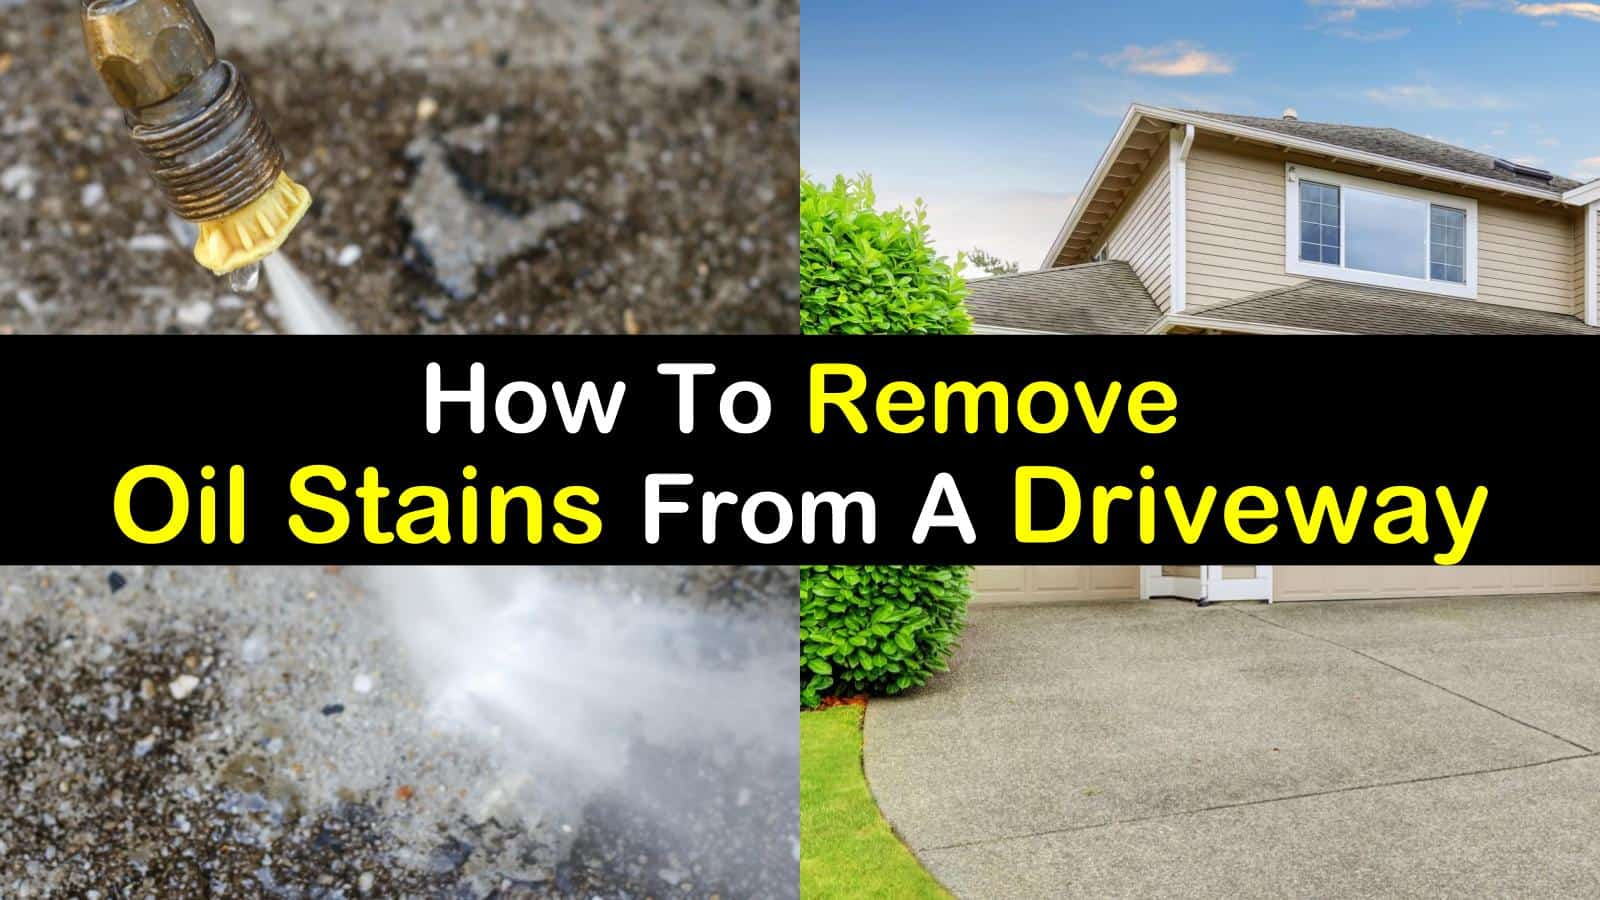 How To Remove Oil Stains From A Driveway